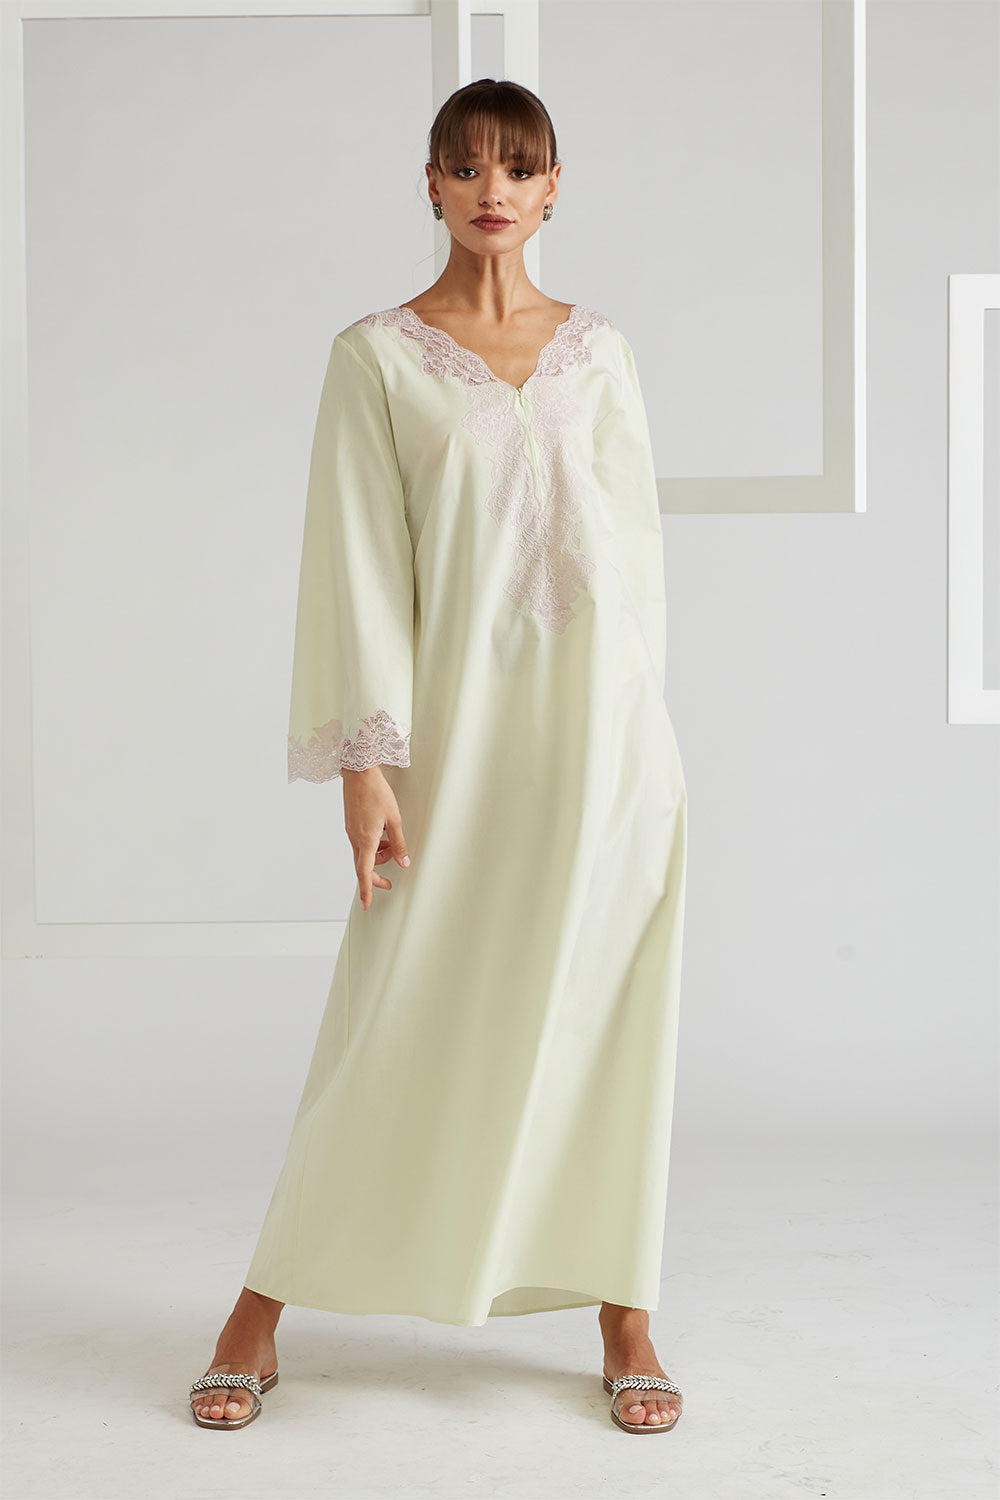 Cotton Poplin Dress - Sheila (Pink) Light Green